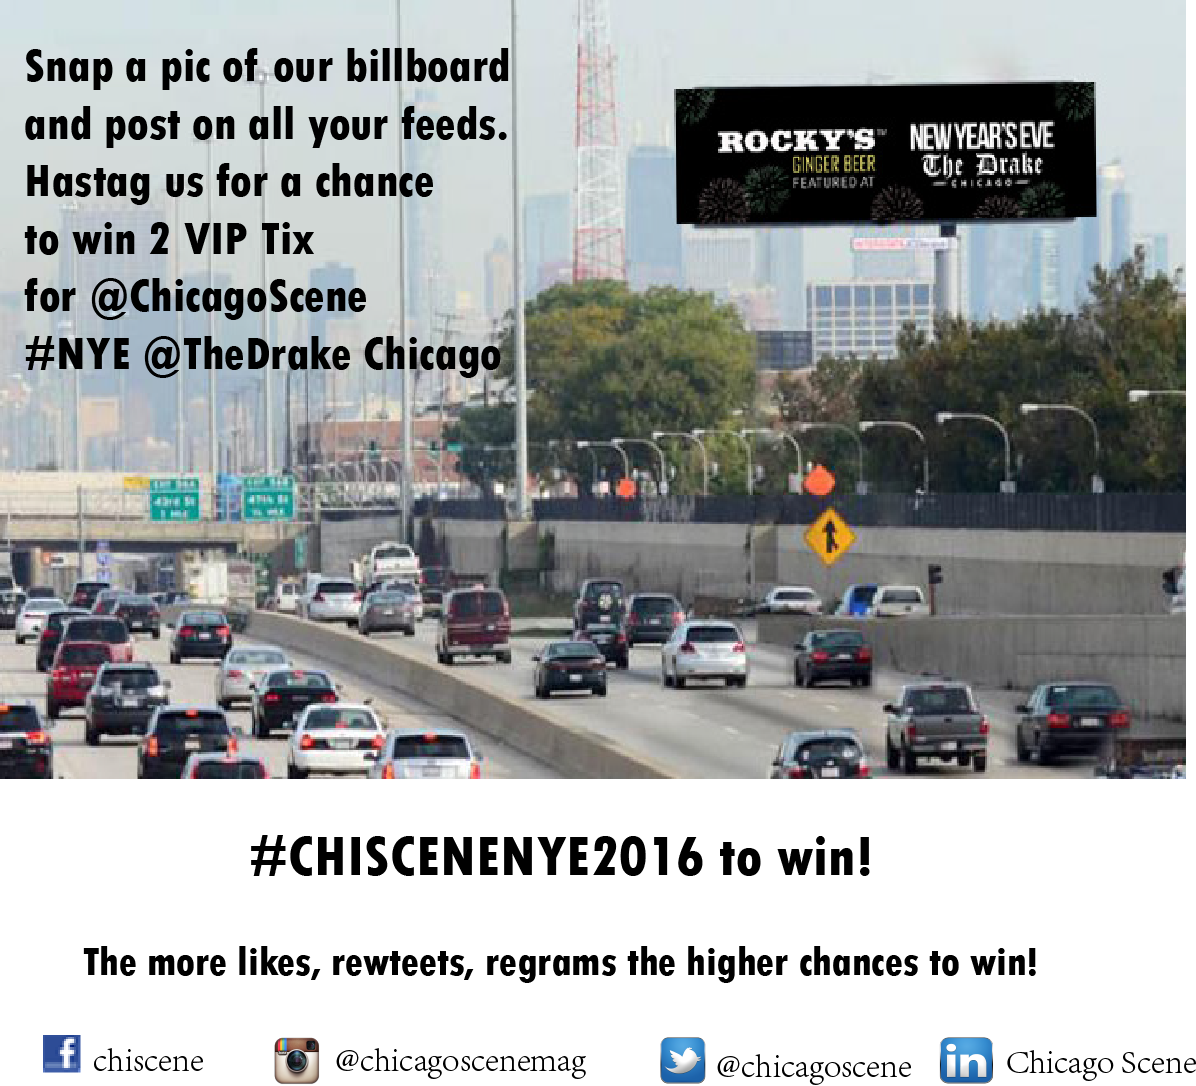 Look for our billboard and snap a pic for a chance to win! https://t.co/w6p5G4R6yg https://t.co/PvgiEpUX31